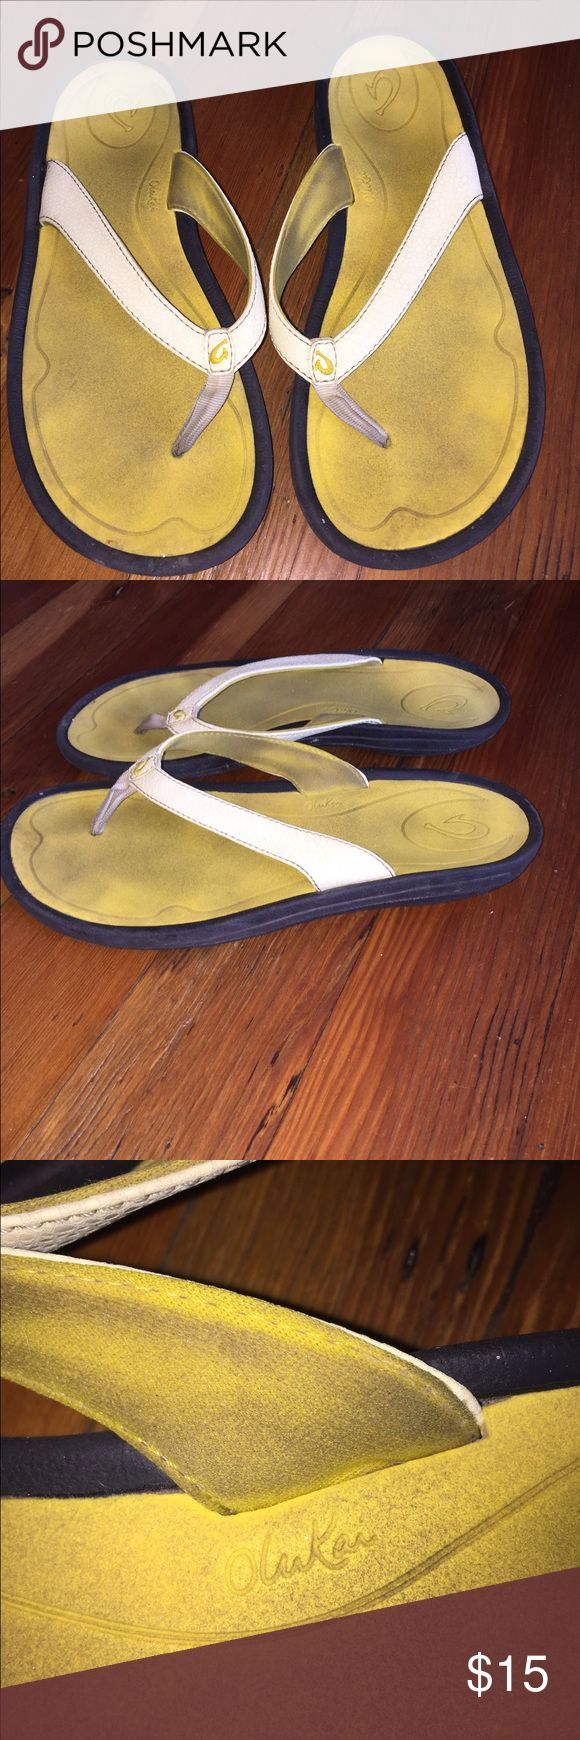 Olukai yellow super comfy flip flops from maui Olukai yellow super comfy flip flops from maui. I'll clean then up OluKai Shoes Sandals